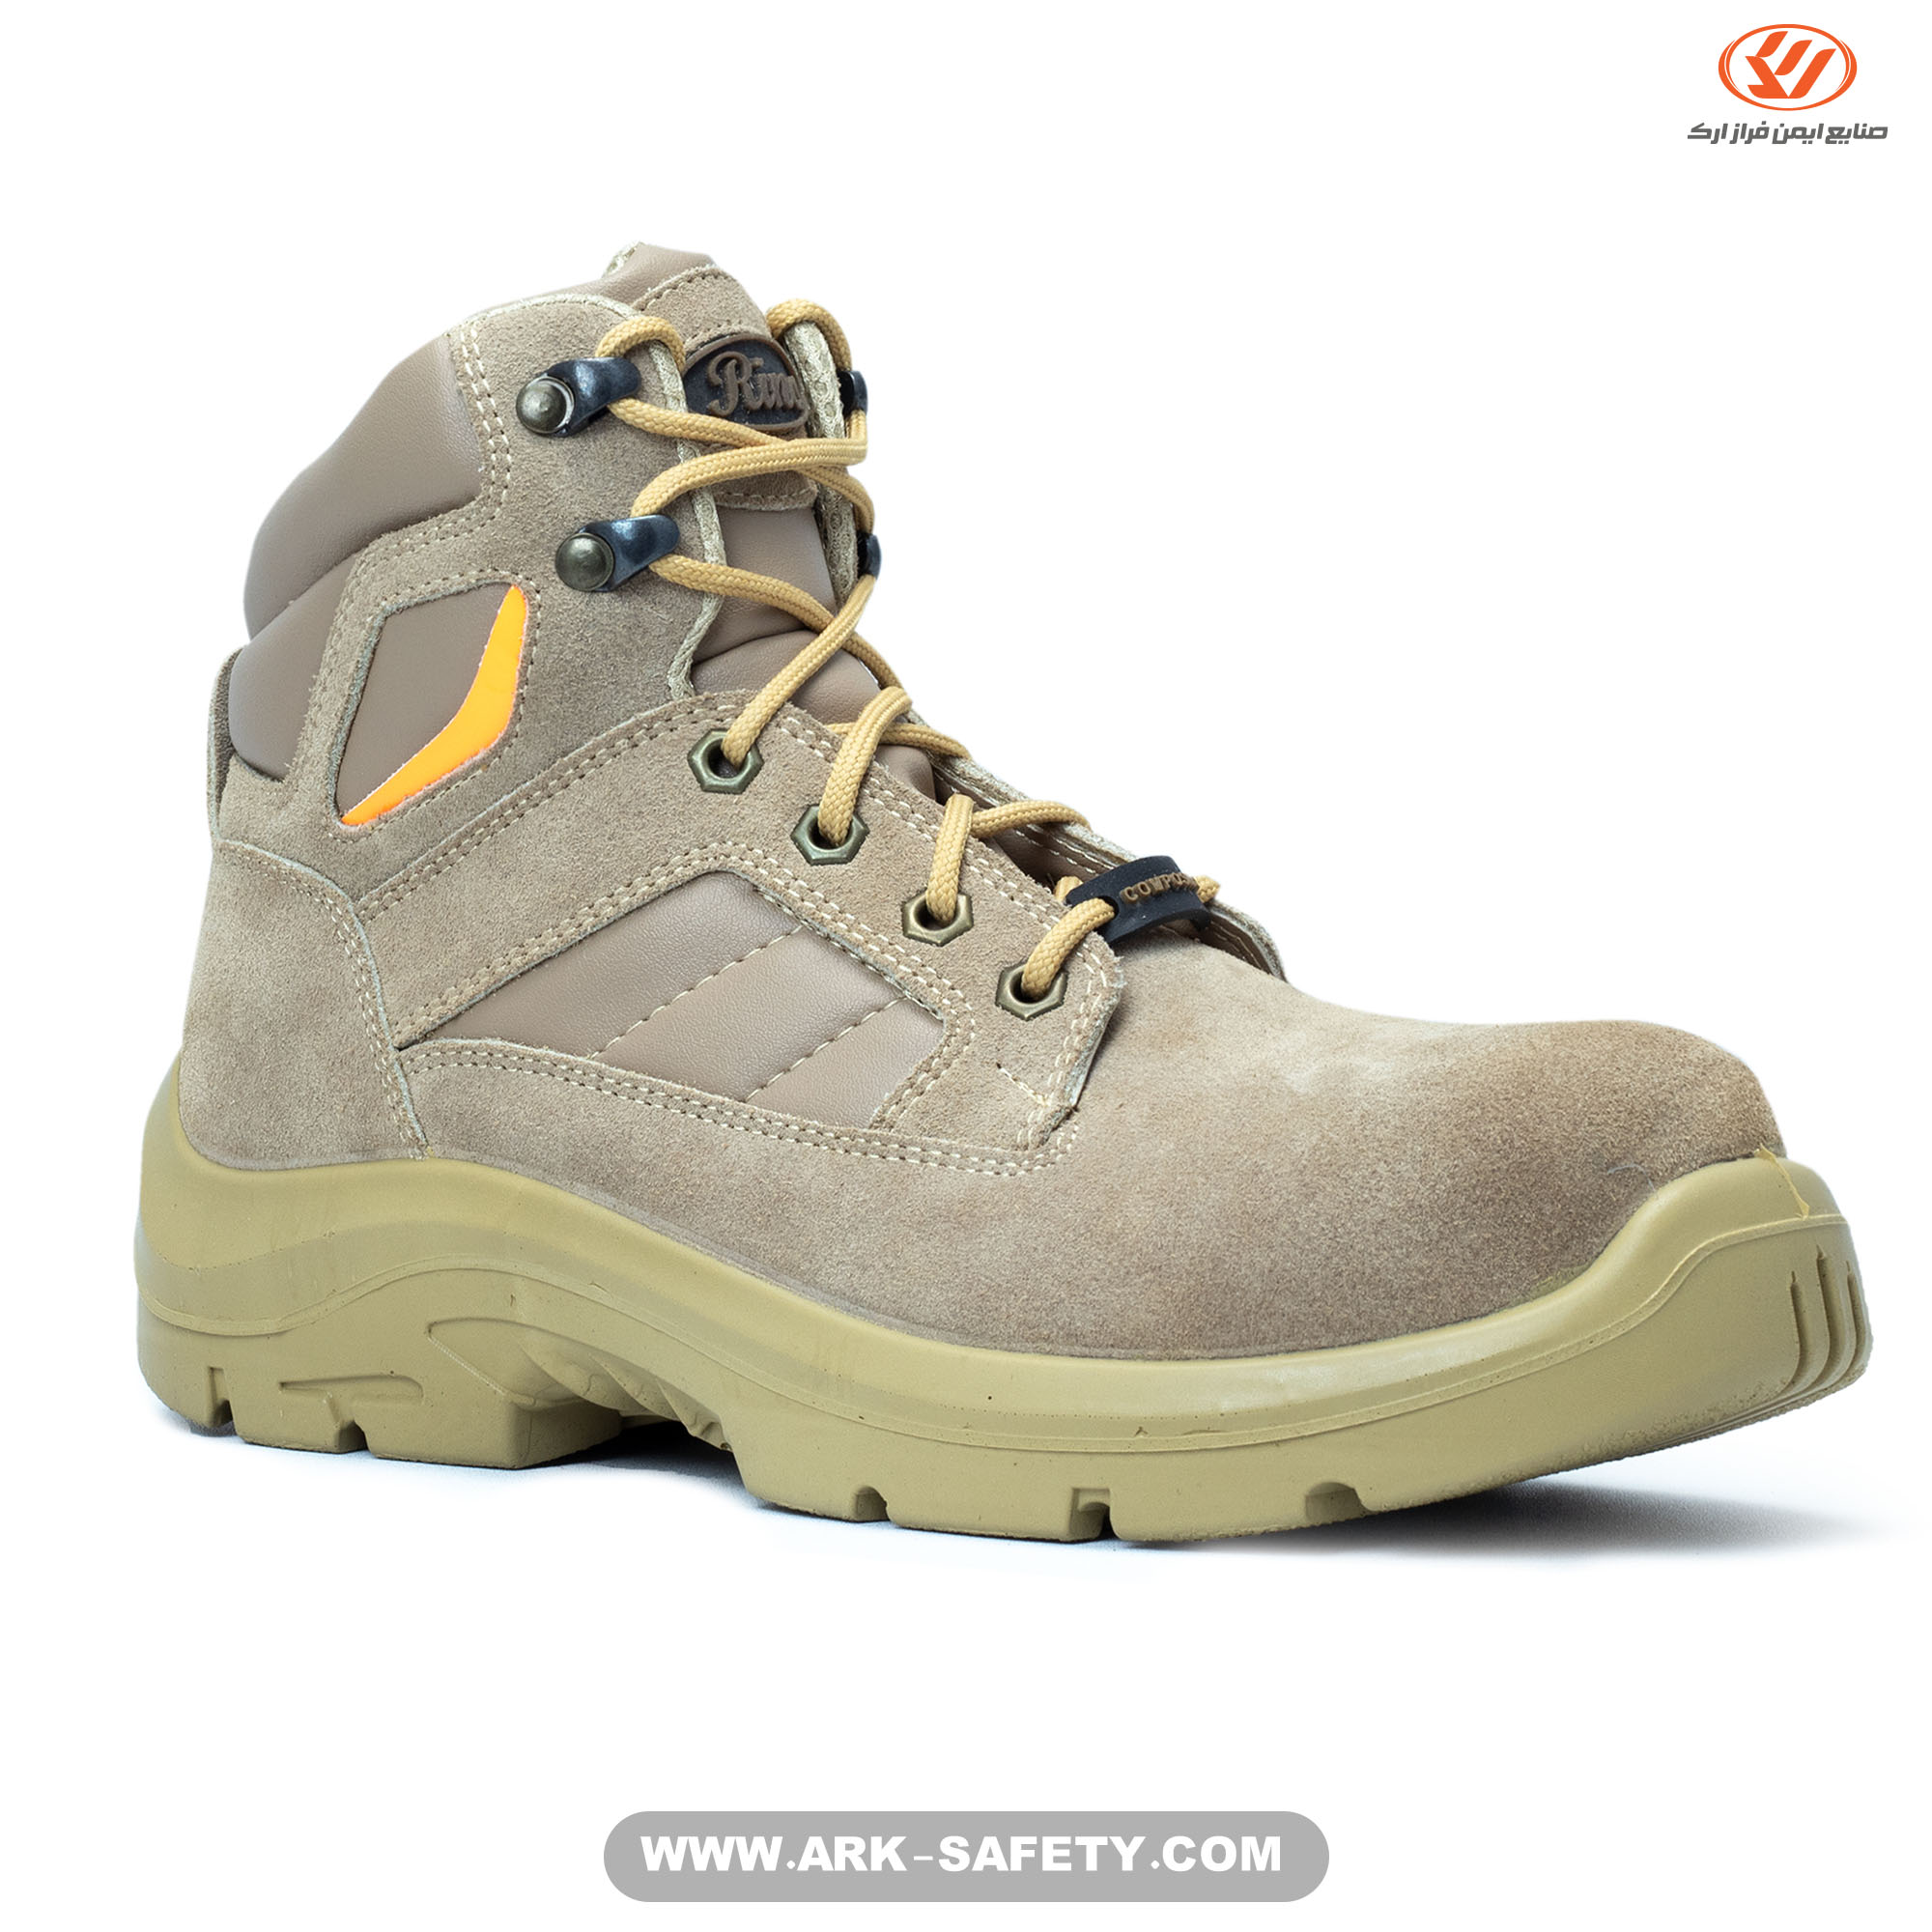 Rino Safety Boots